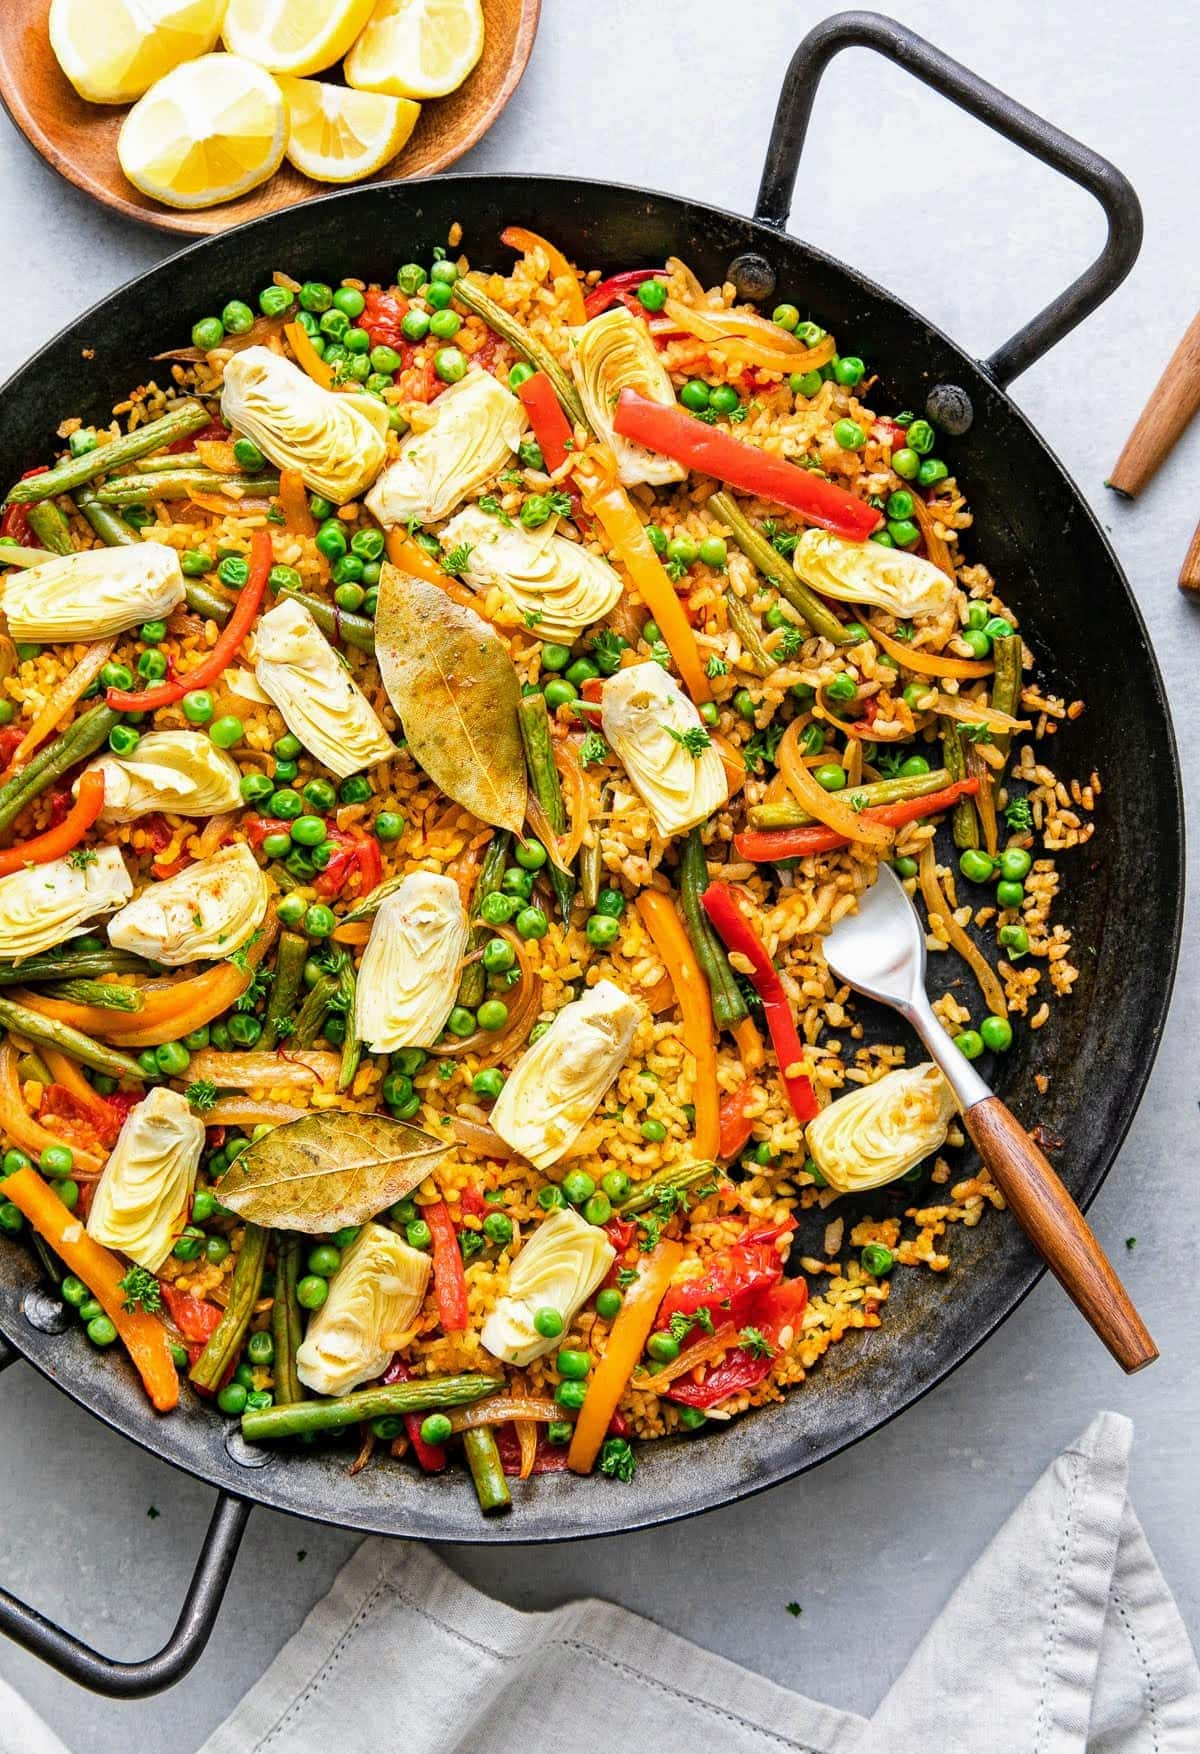 top down view of vegetable vegan paella in a paella pan with fork and items surrounding.